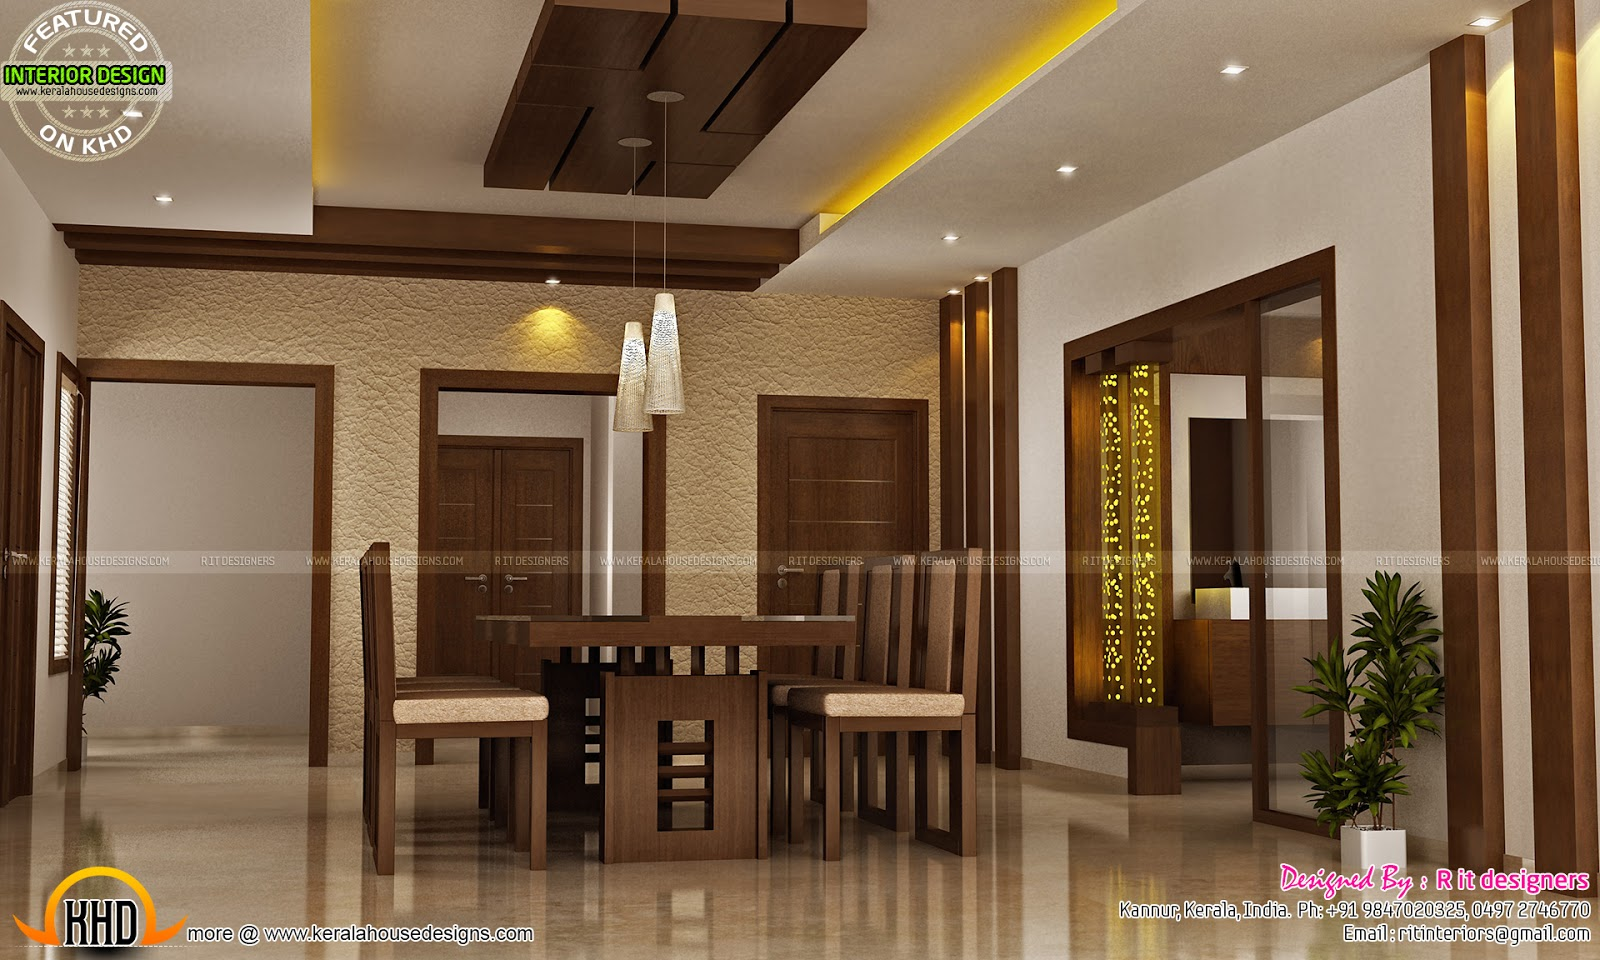 Modular kitchen bedroom teen bedroom and dining interior for Bathroom interior design kerala